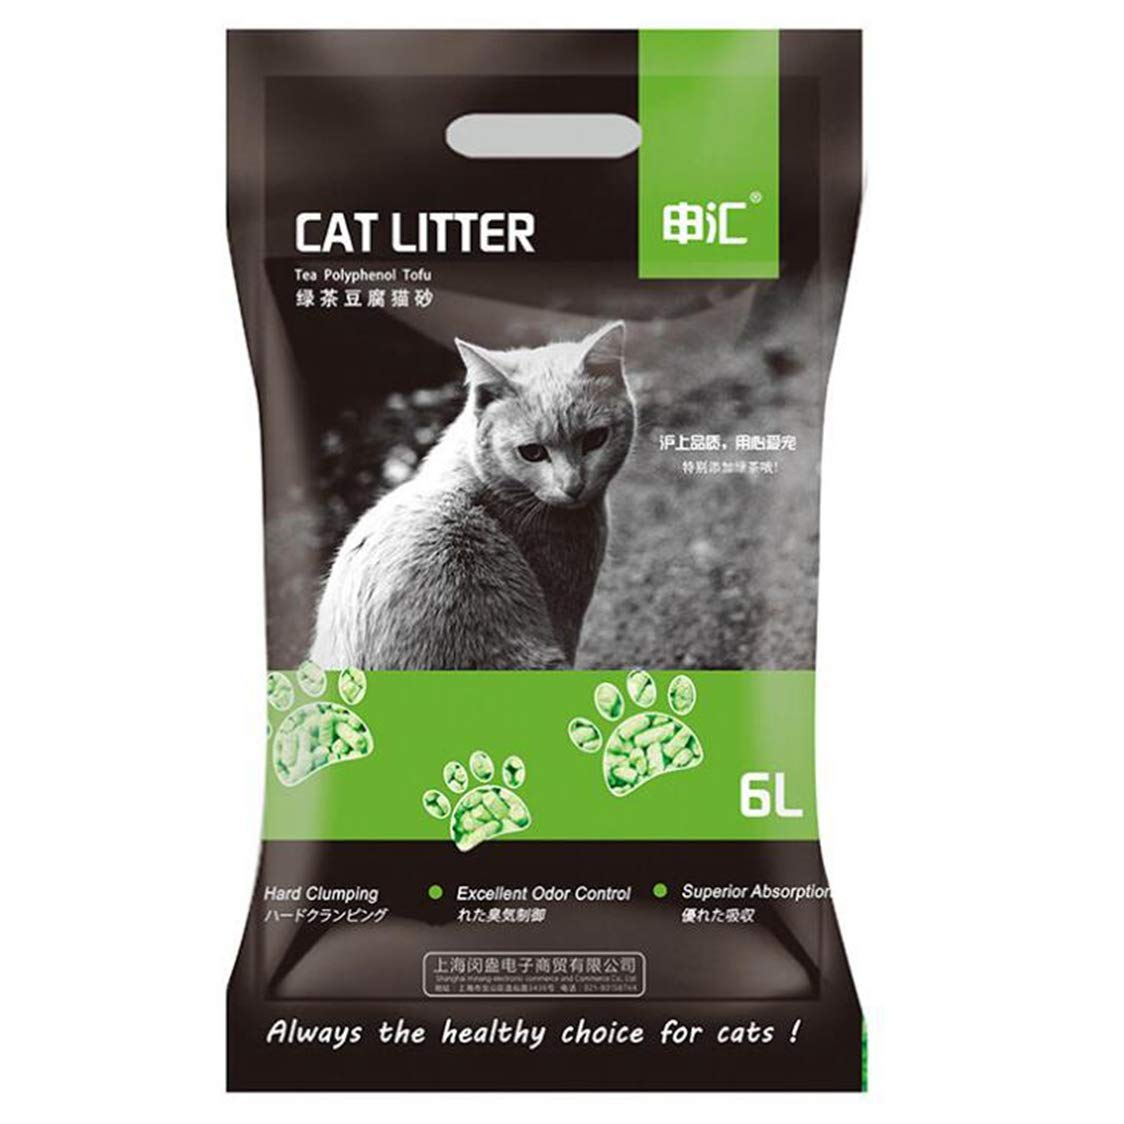 Clay Cat Litter, Cat Litter Tofu, Green Tea Flavored Tofu Cat Litter, Helpless Adhesive Rejects Formaldehyde, 6L Vacuum Packaging